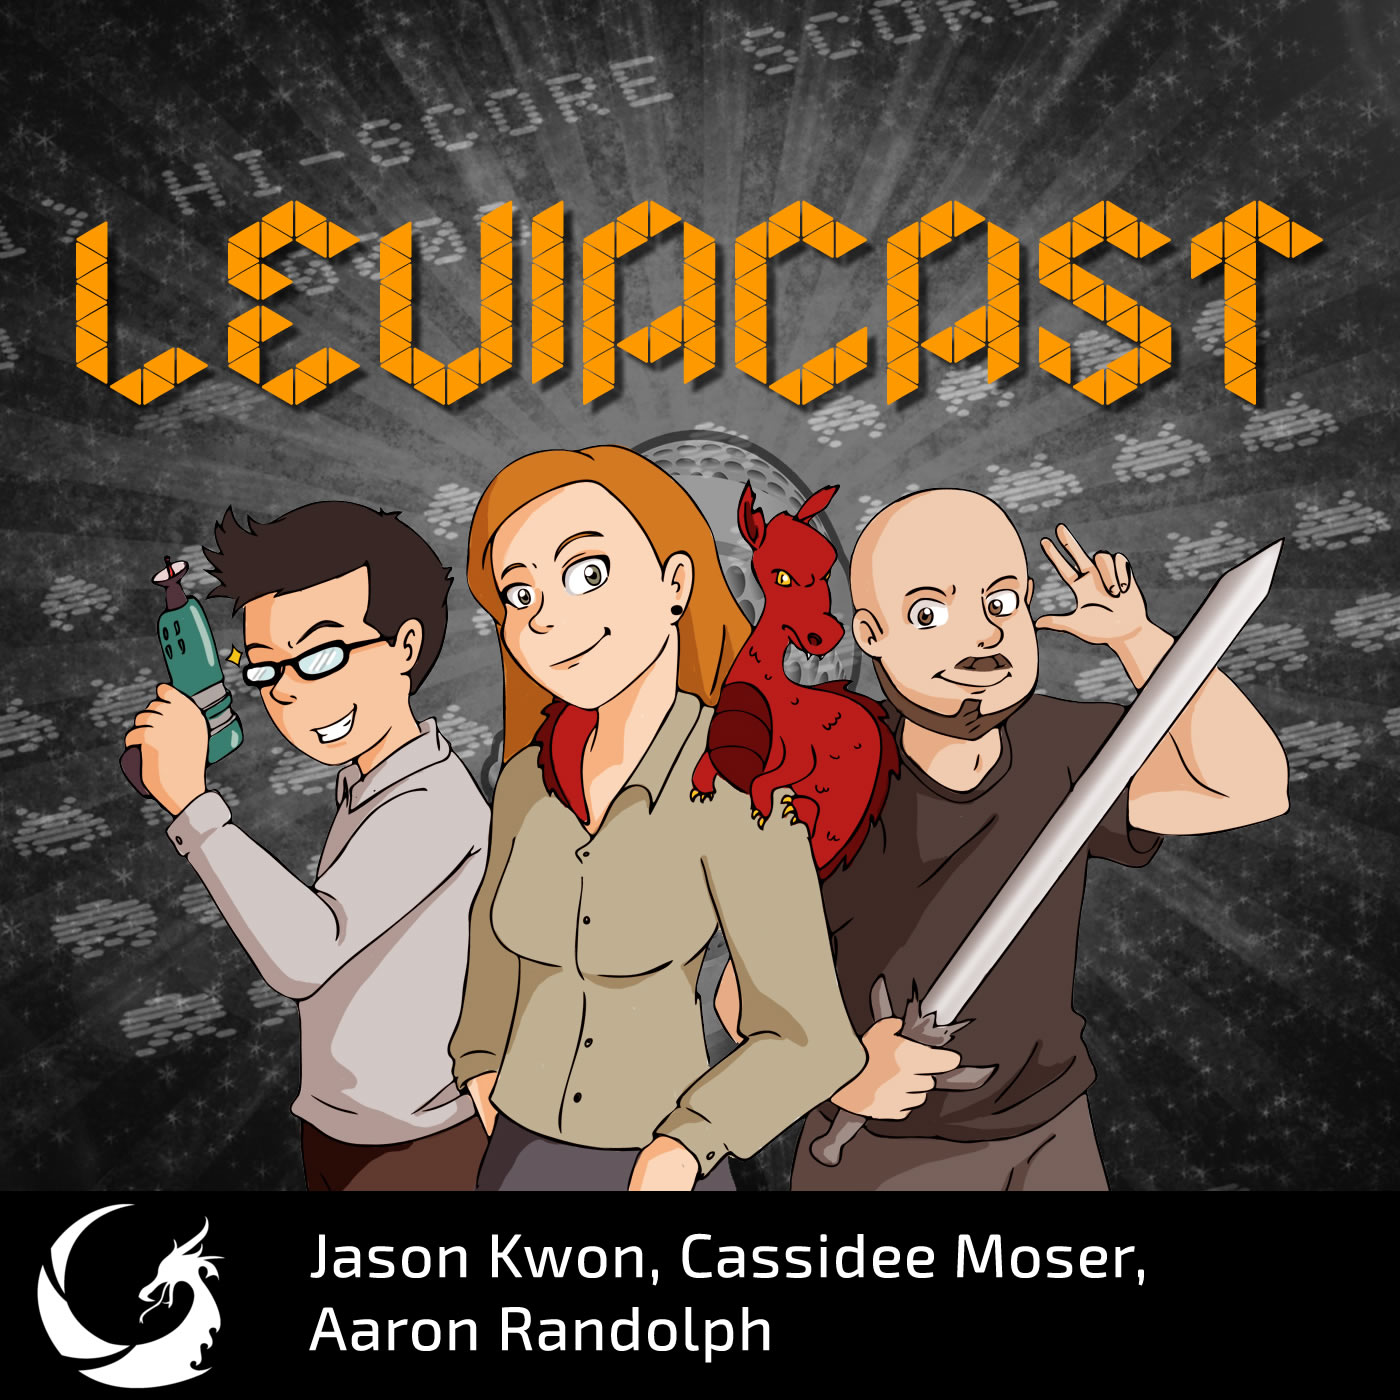 Leviacast Ep. 101: Pillars of Eternity, OlliOlli, Nintendo